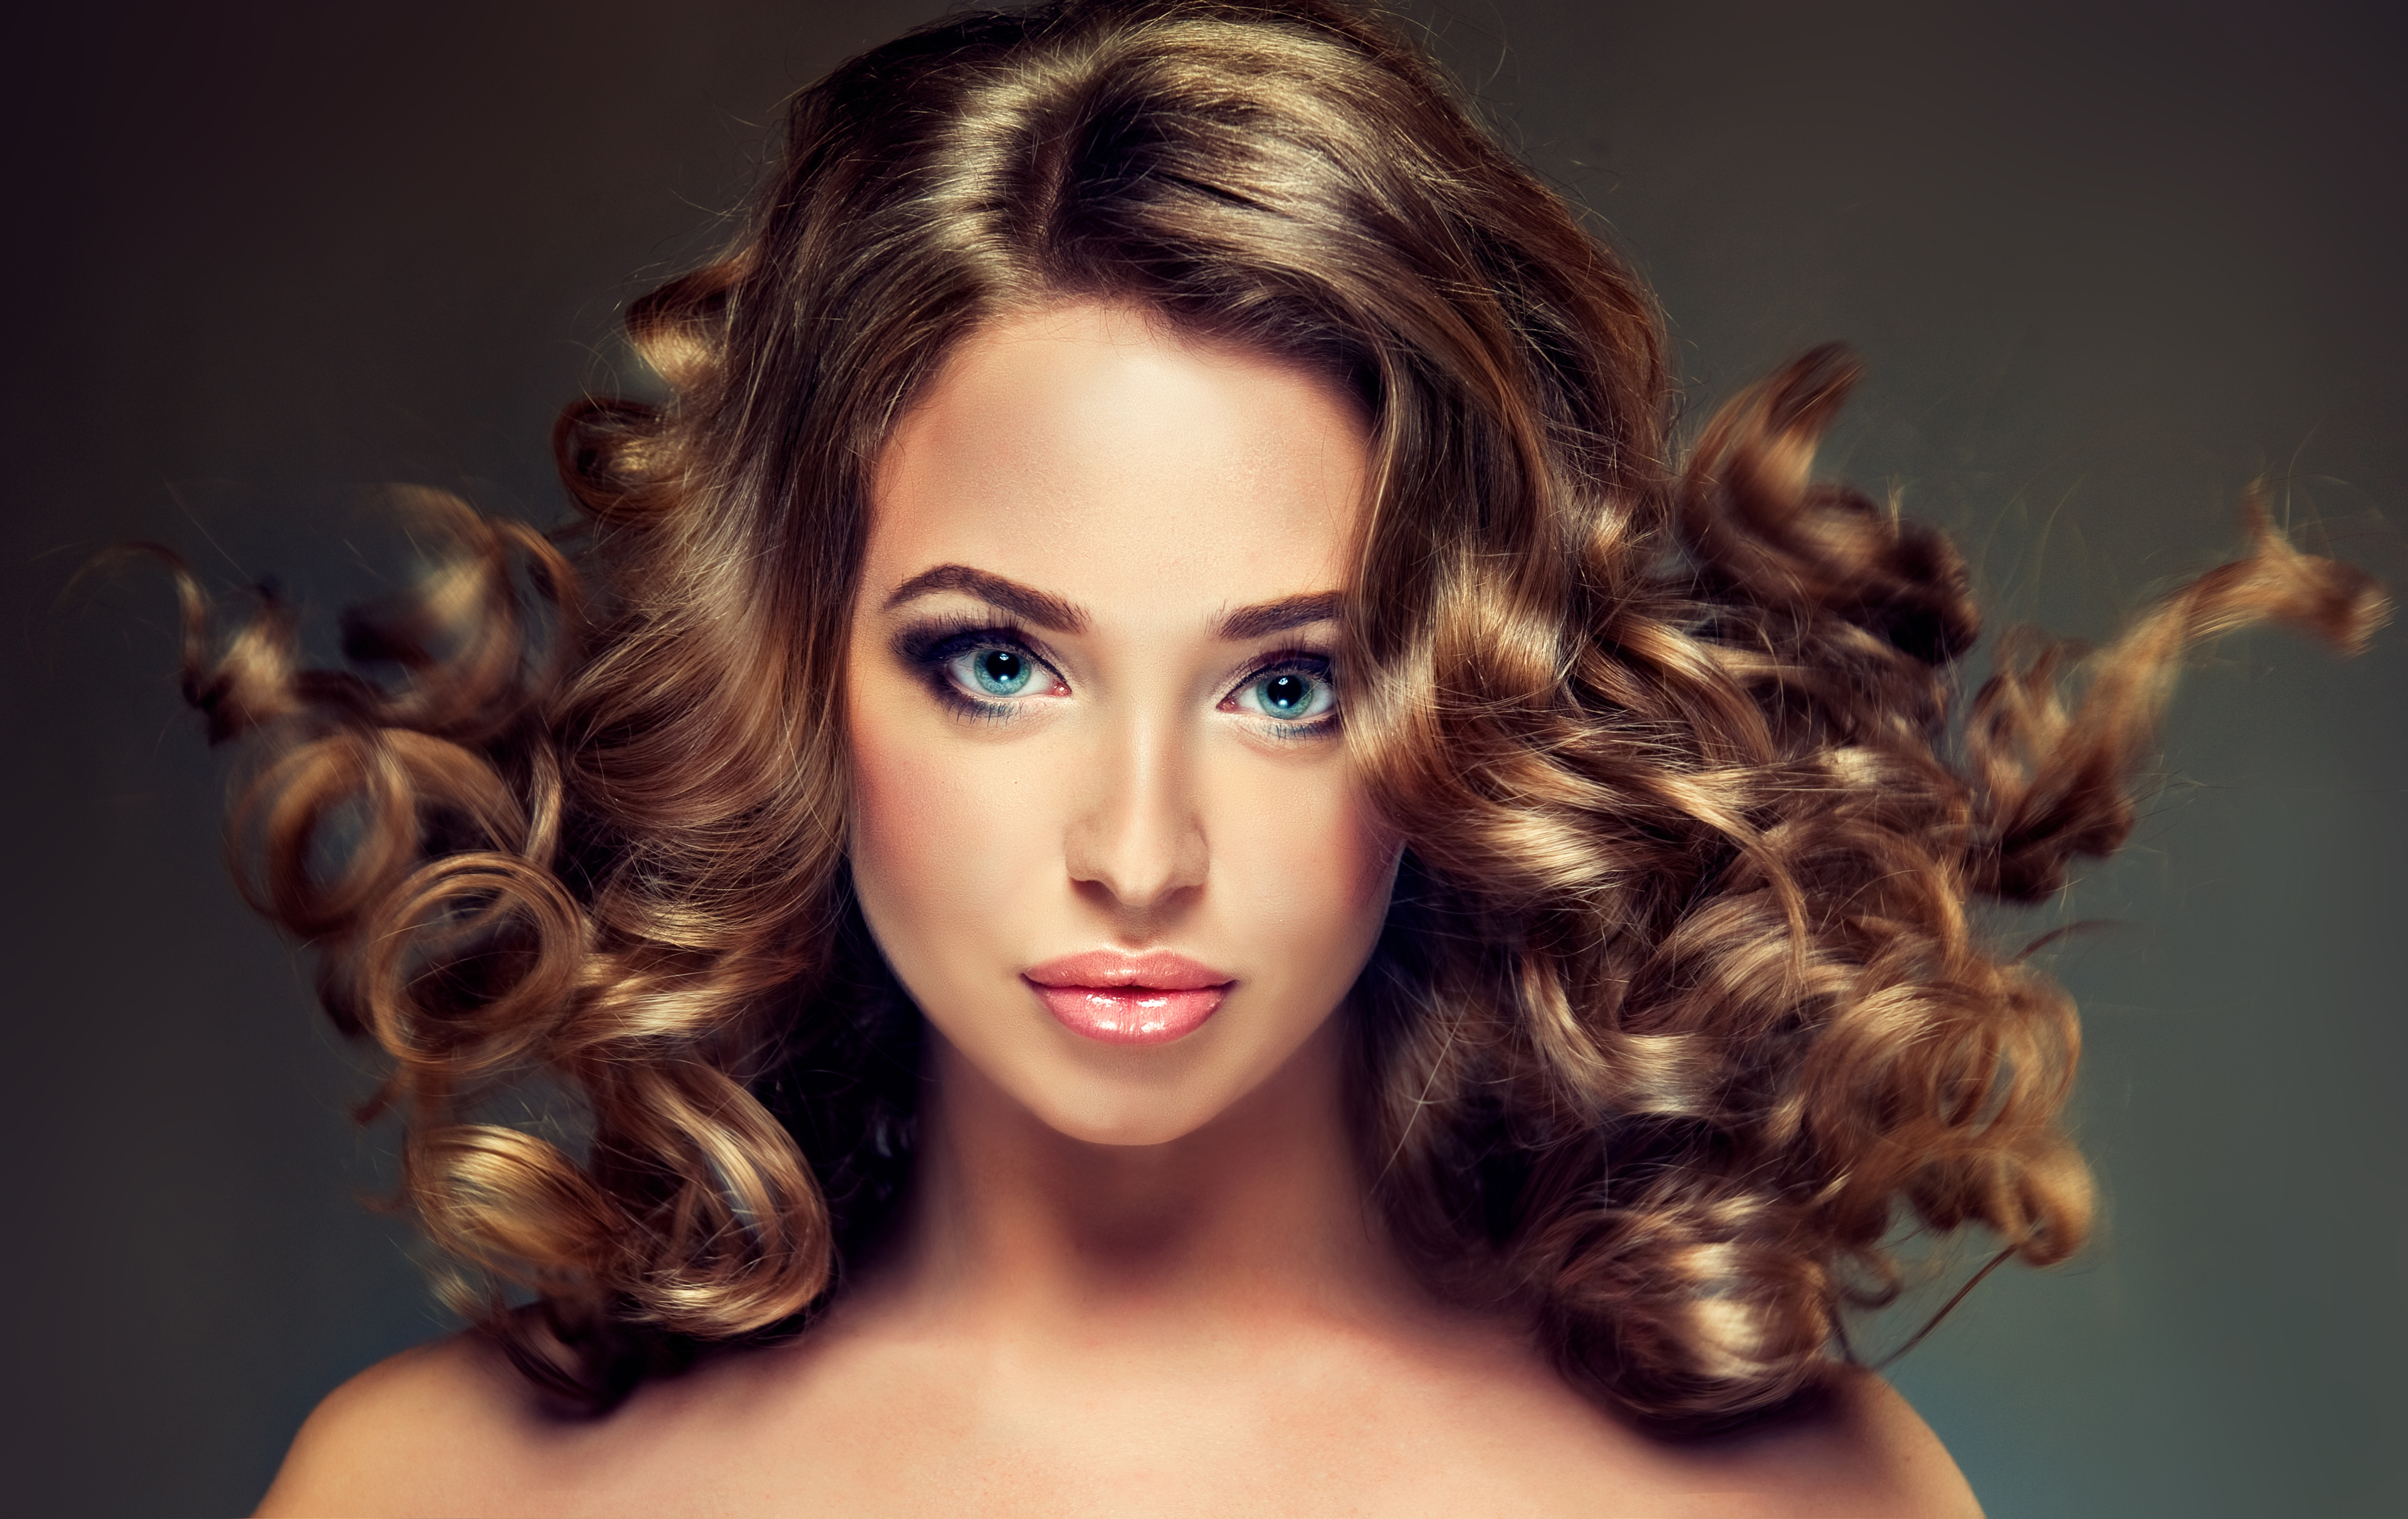 hairstyles-pictures-girls